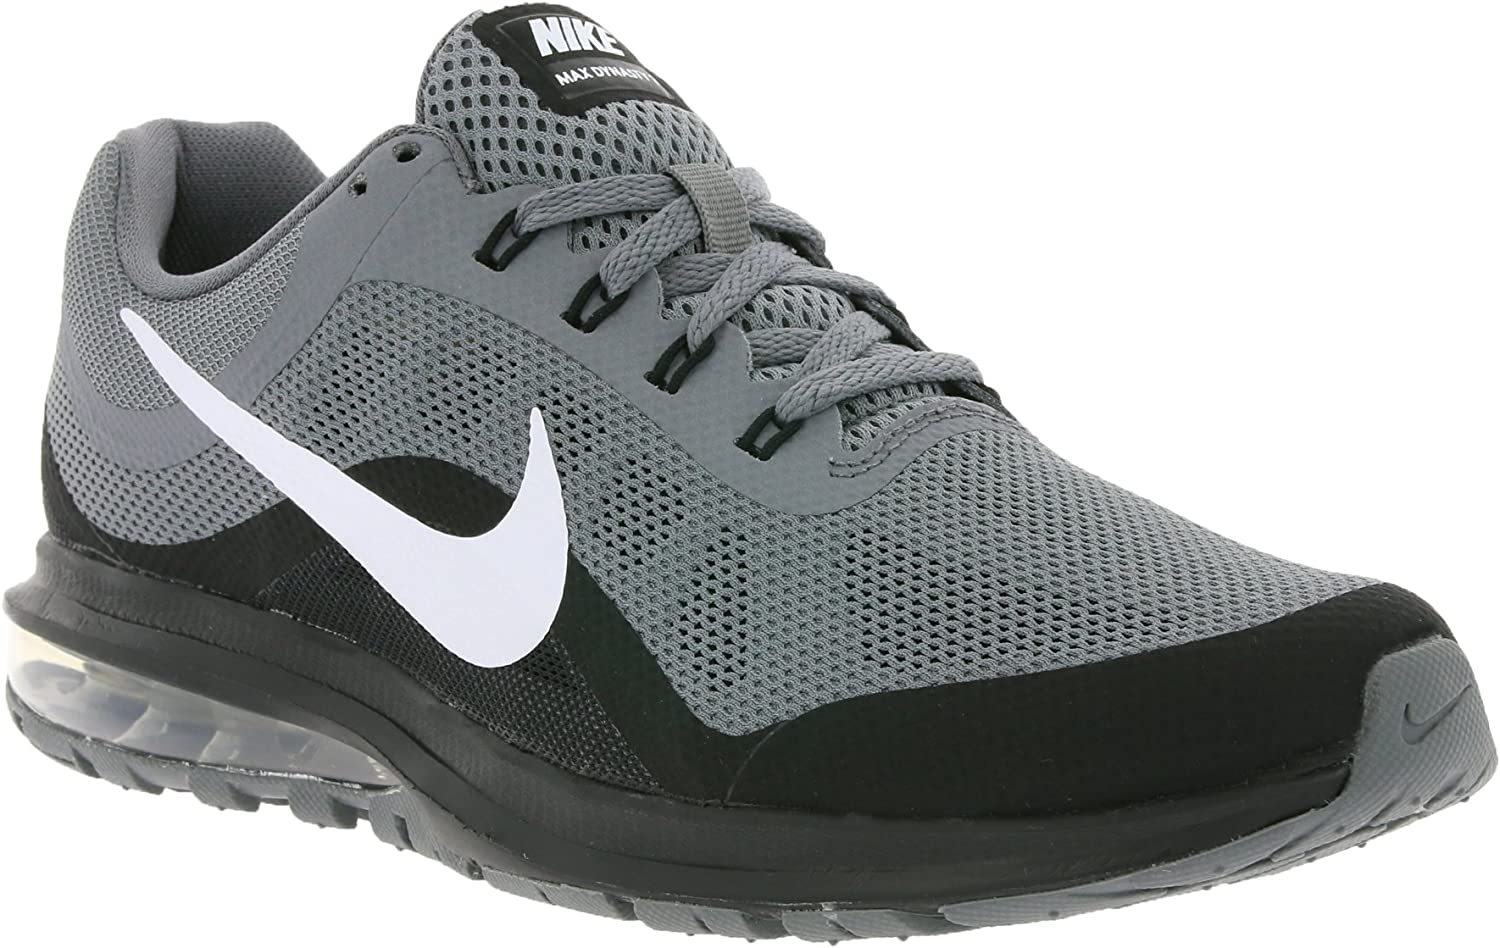 Nike Mens Air Max Dynasty 2 Running Shoes